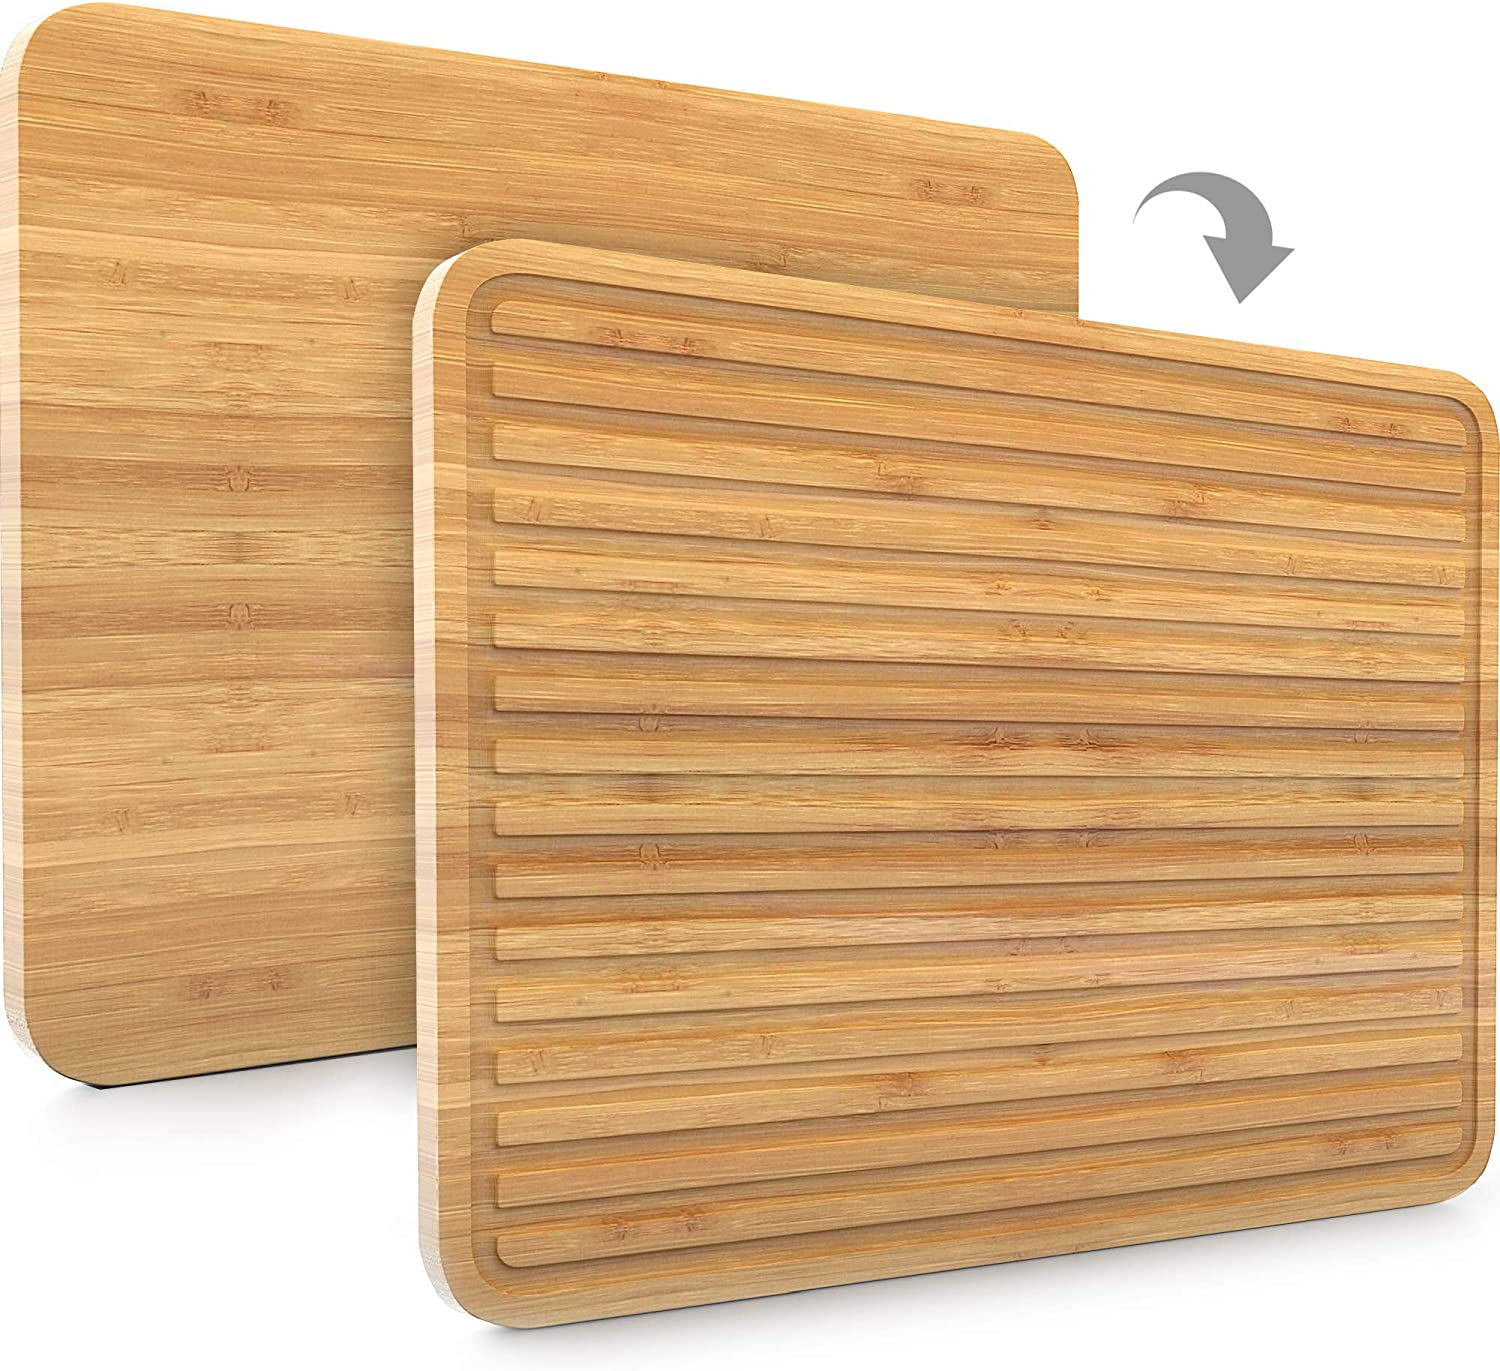 Large Bamboo Cutting Board For Kitchen Wood Cutting Board Butcher Block Knife Friendly For Chopping Meat And Vegetables Sleek 2 In 1 Drain Board 17 X 12 5 Kitchen Dining